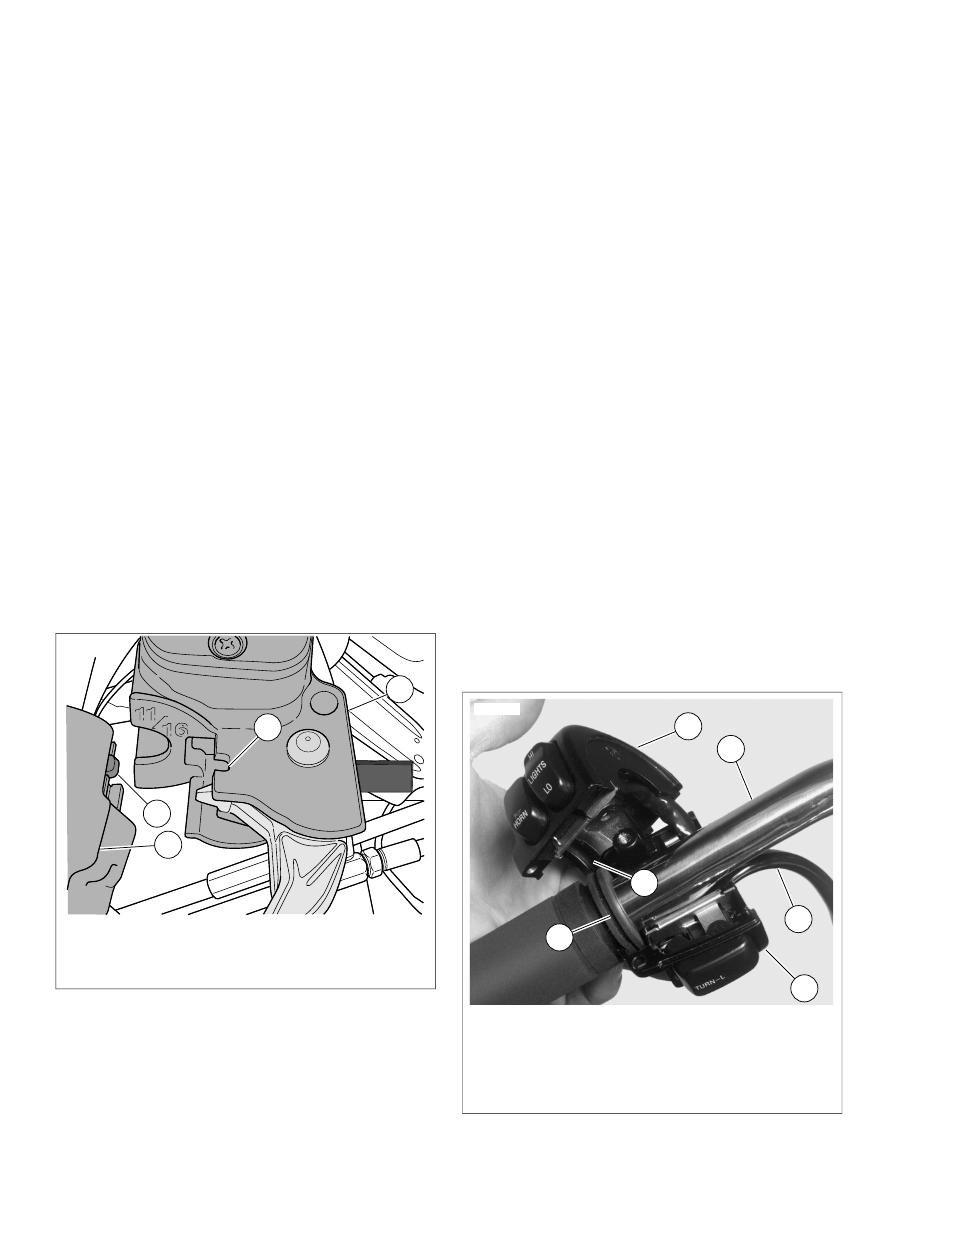 Install New Left Handlebar Control With Harness Harley Davidson Switch 77197 07 User Manual Page 4 6